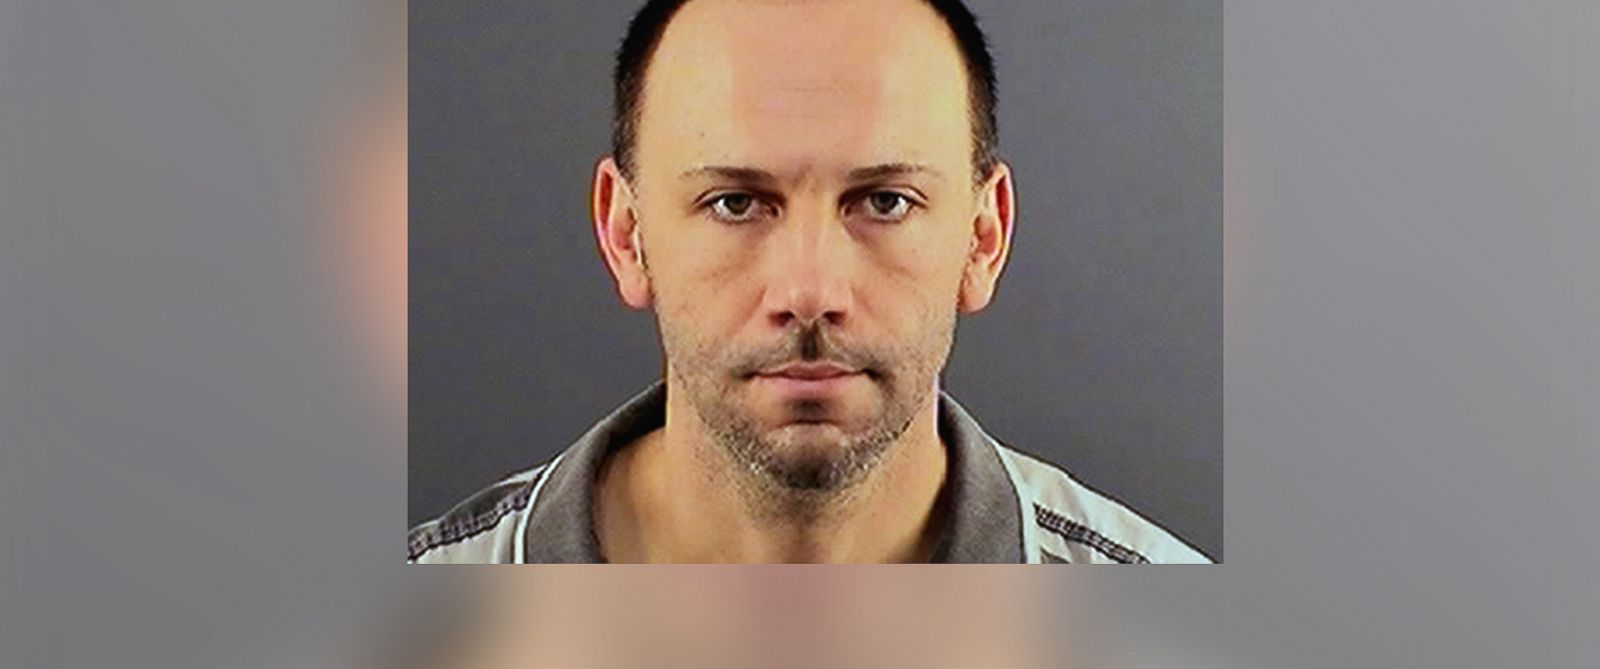 PHOTO: Nathan Leuthold, 39, is shown in this undated photo provided by the Peoria County Sheriffs Department.